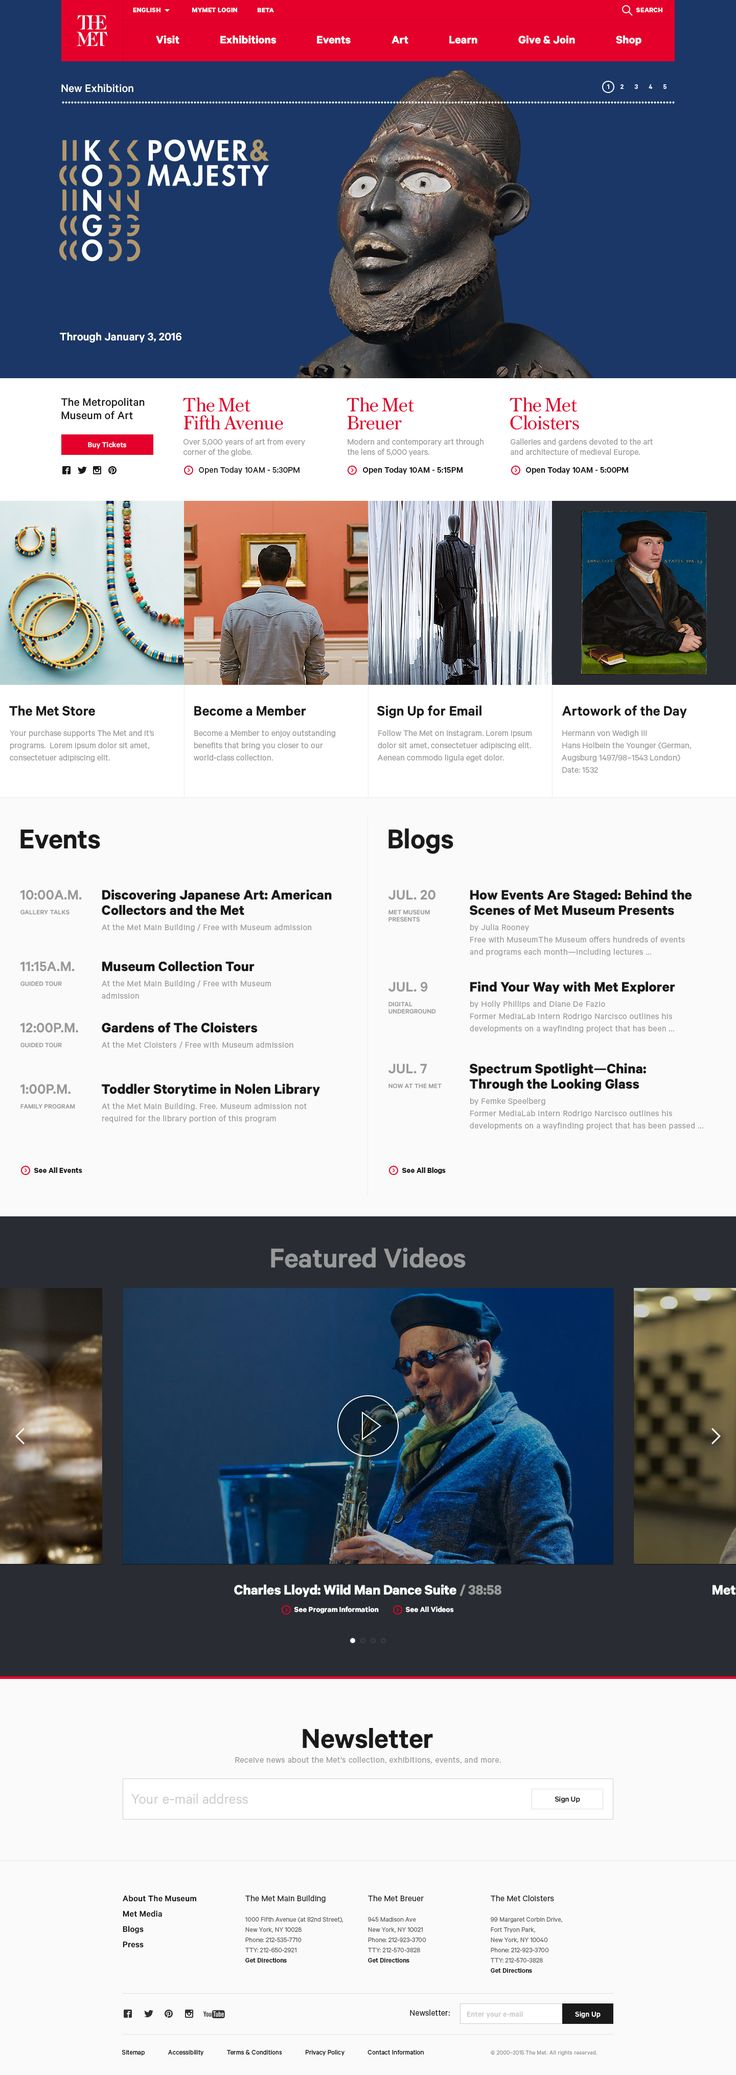 THE MET: Home Page / FΛNTΛSY. If you like UX, design, or design thinking, check out theuxblog.c